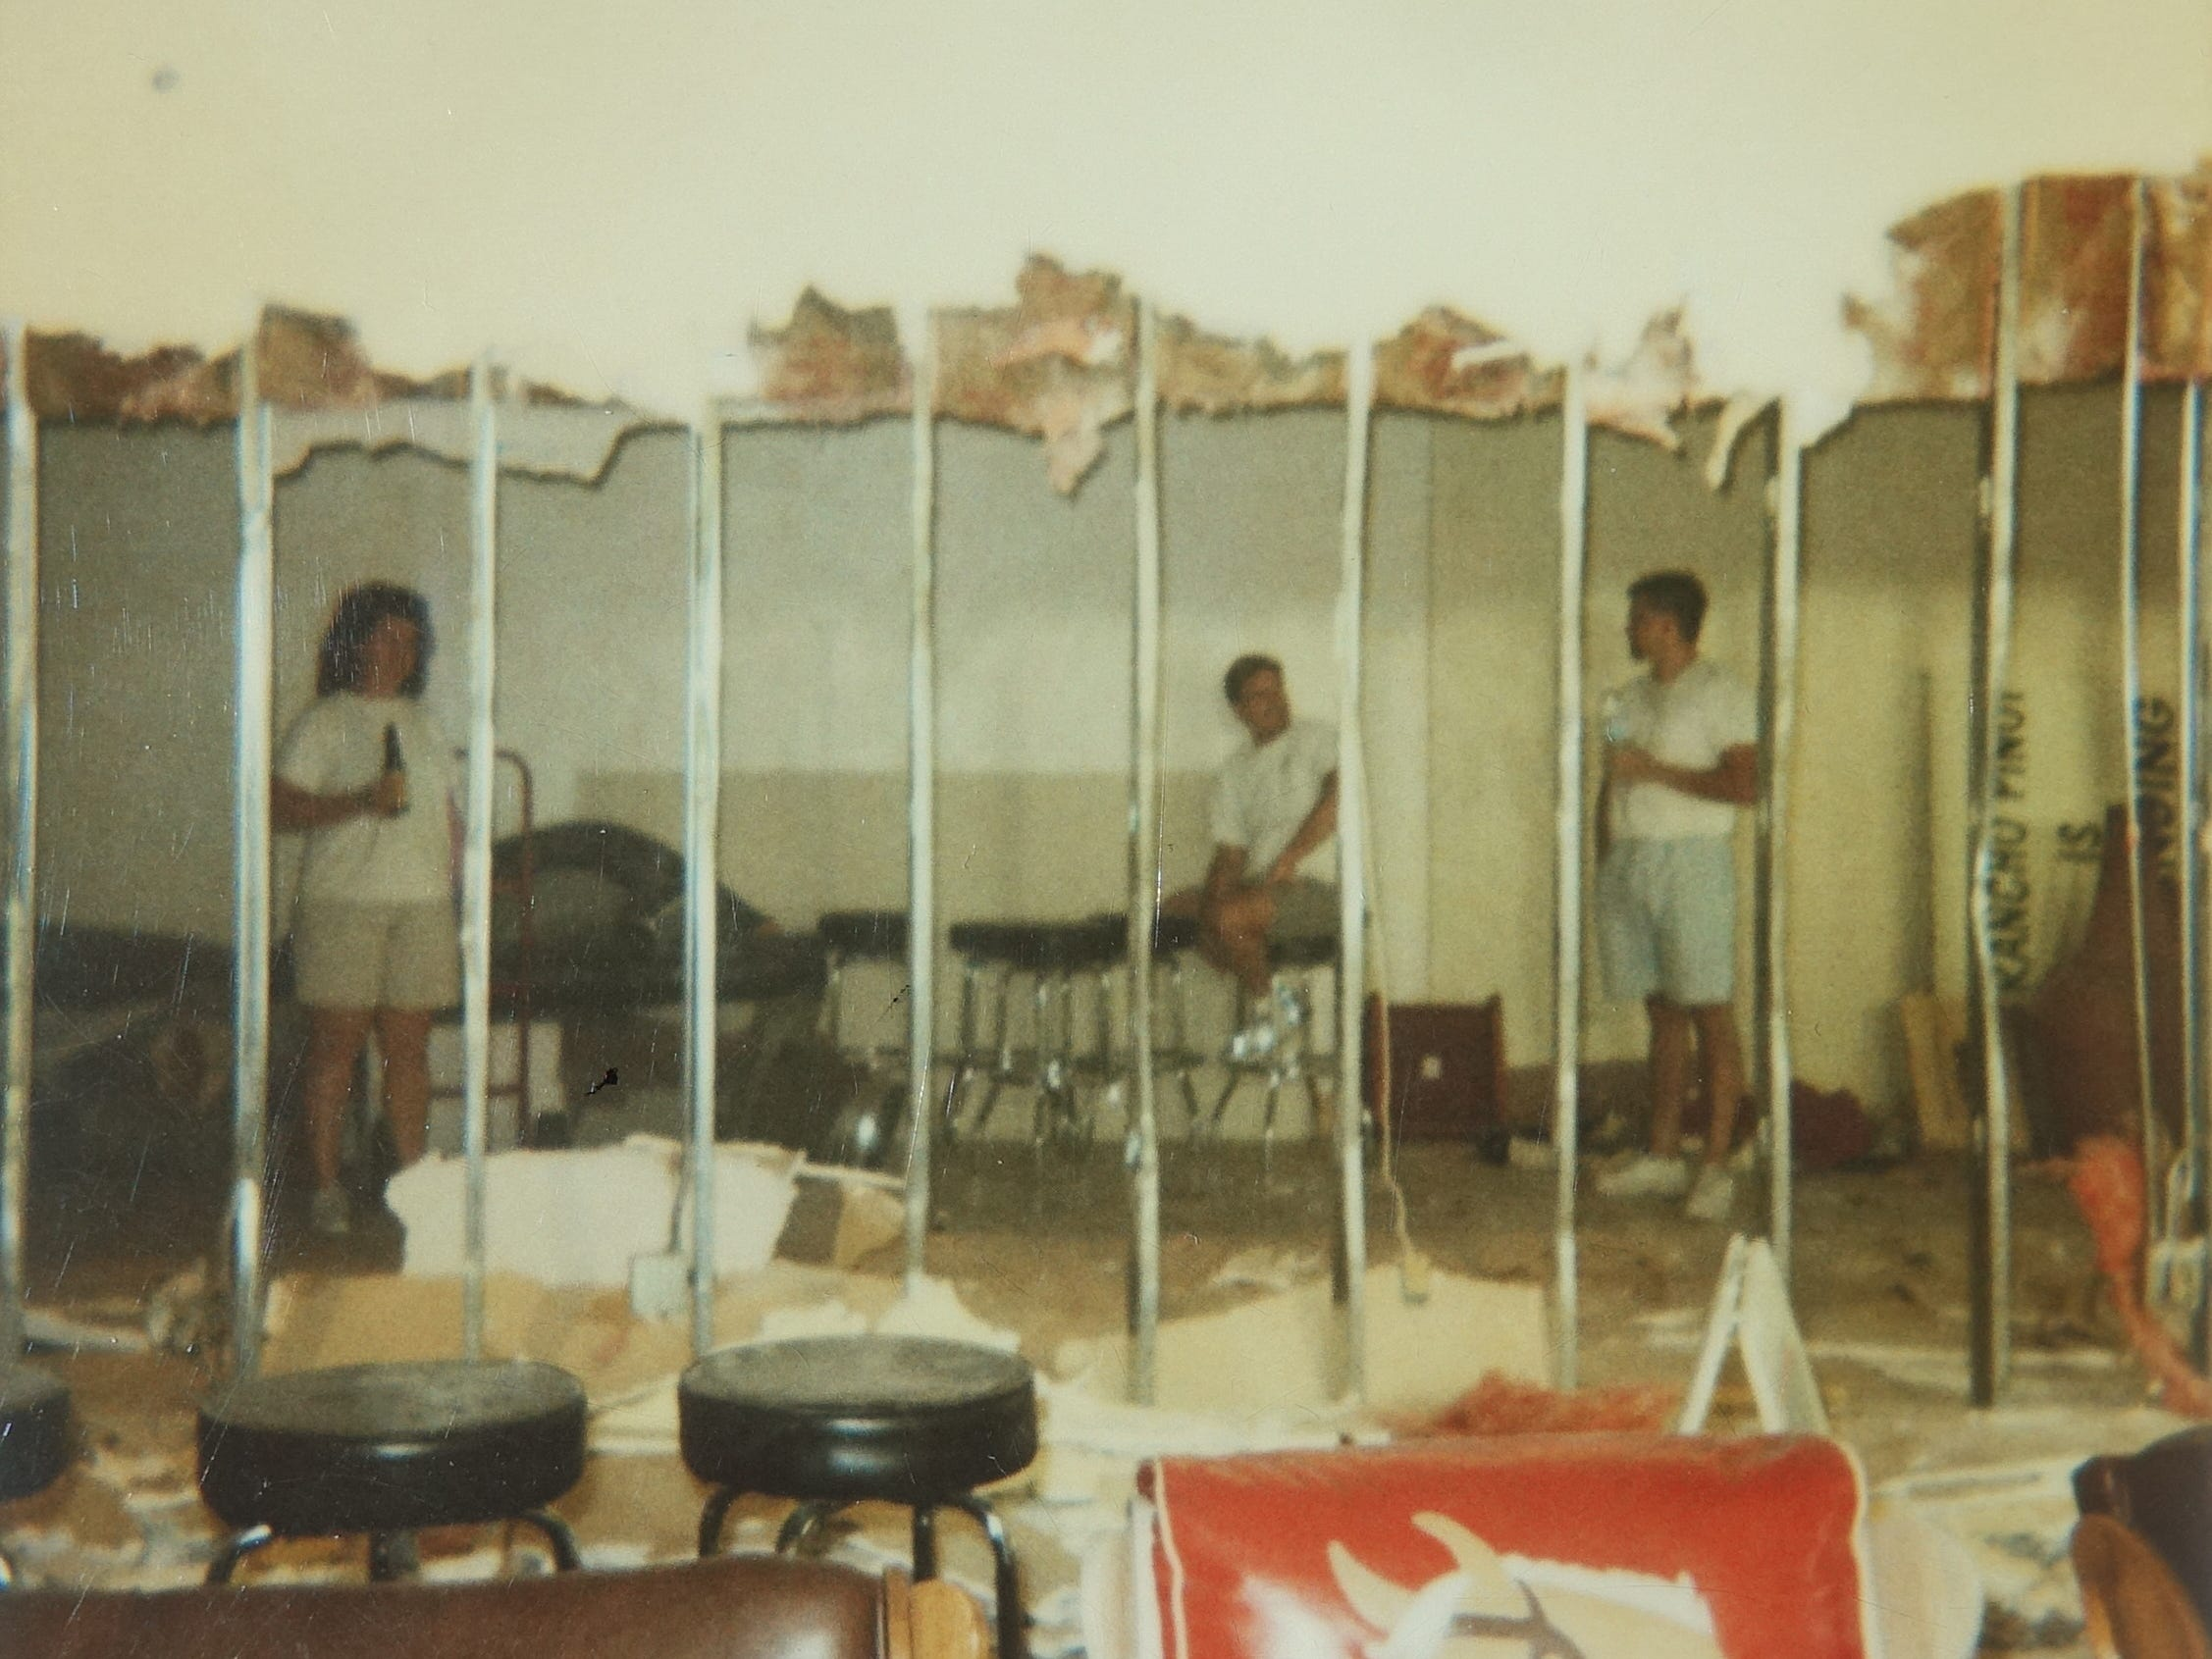 Chrysa Robertson and others demolish the wall to expand Rancho Pinot's Scottsdale location in 1998.